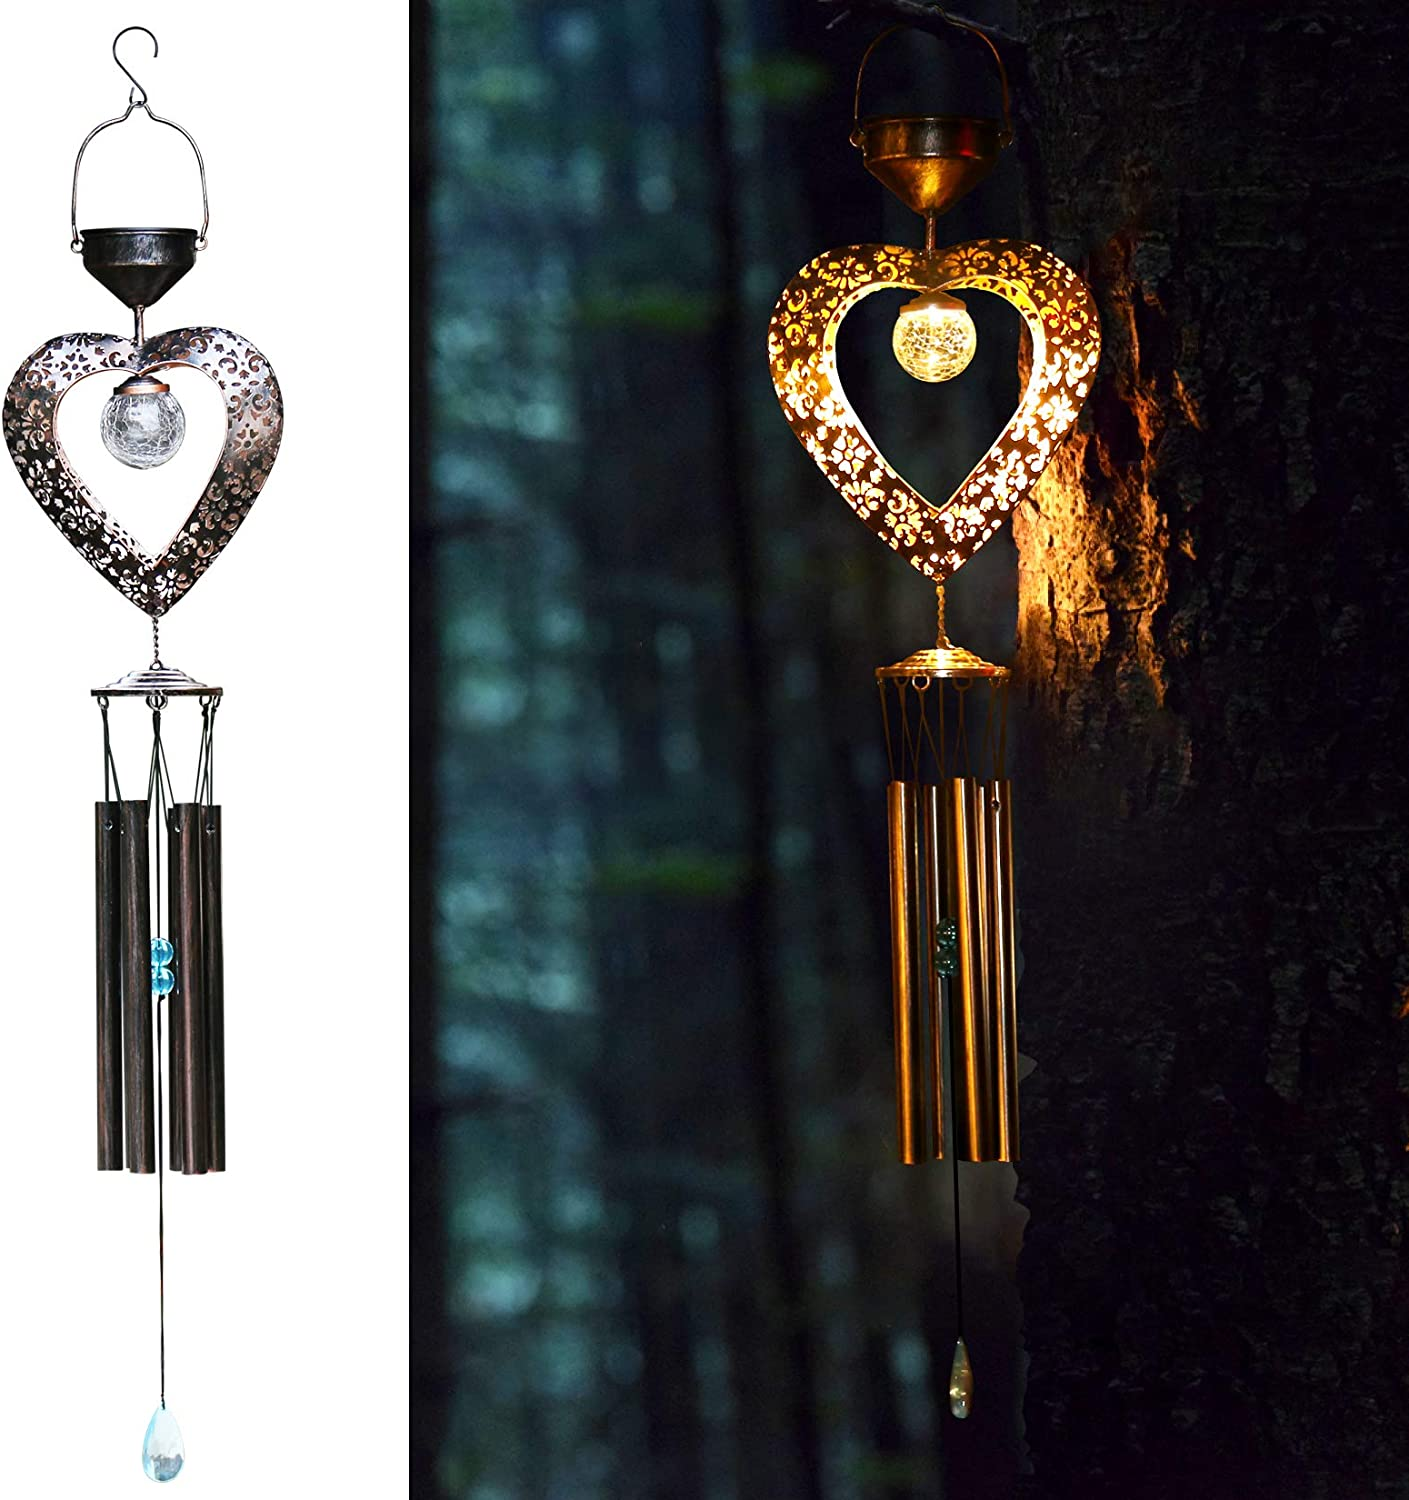 newvivid Solar Wind Chimes, Solar Powered Heart-Shaped LED Wind Chimes Crackle Glass Ball LED Light with Metal Tubes Waterproof for Home Garden Patio Party Festival Decor